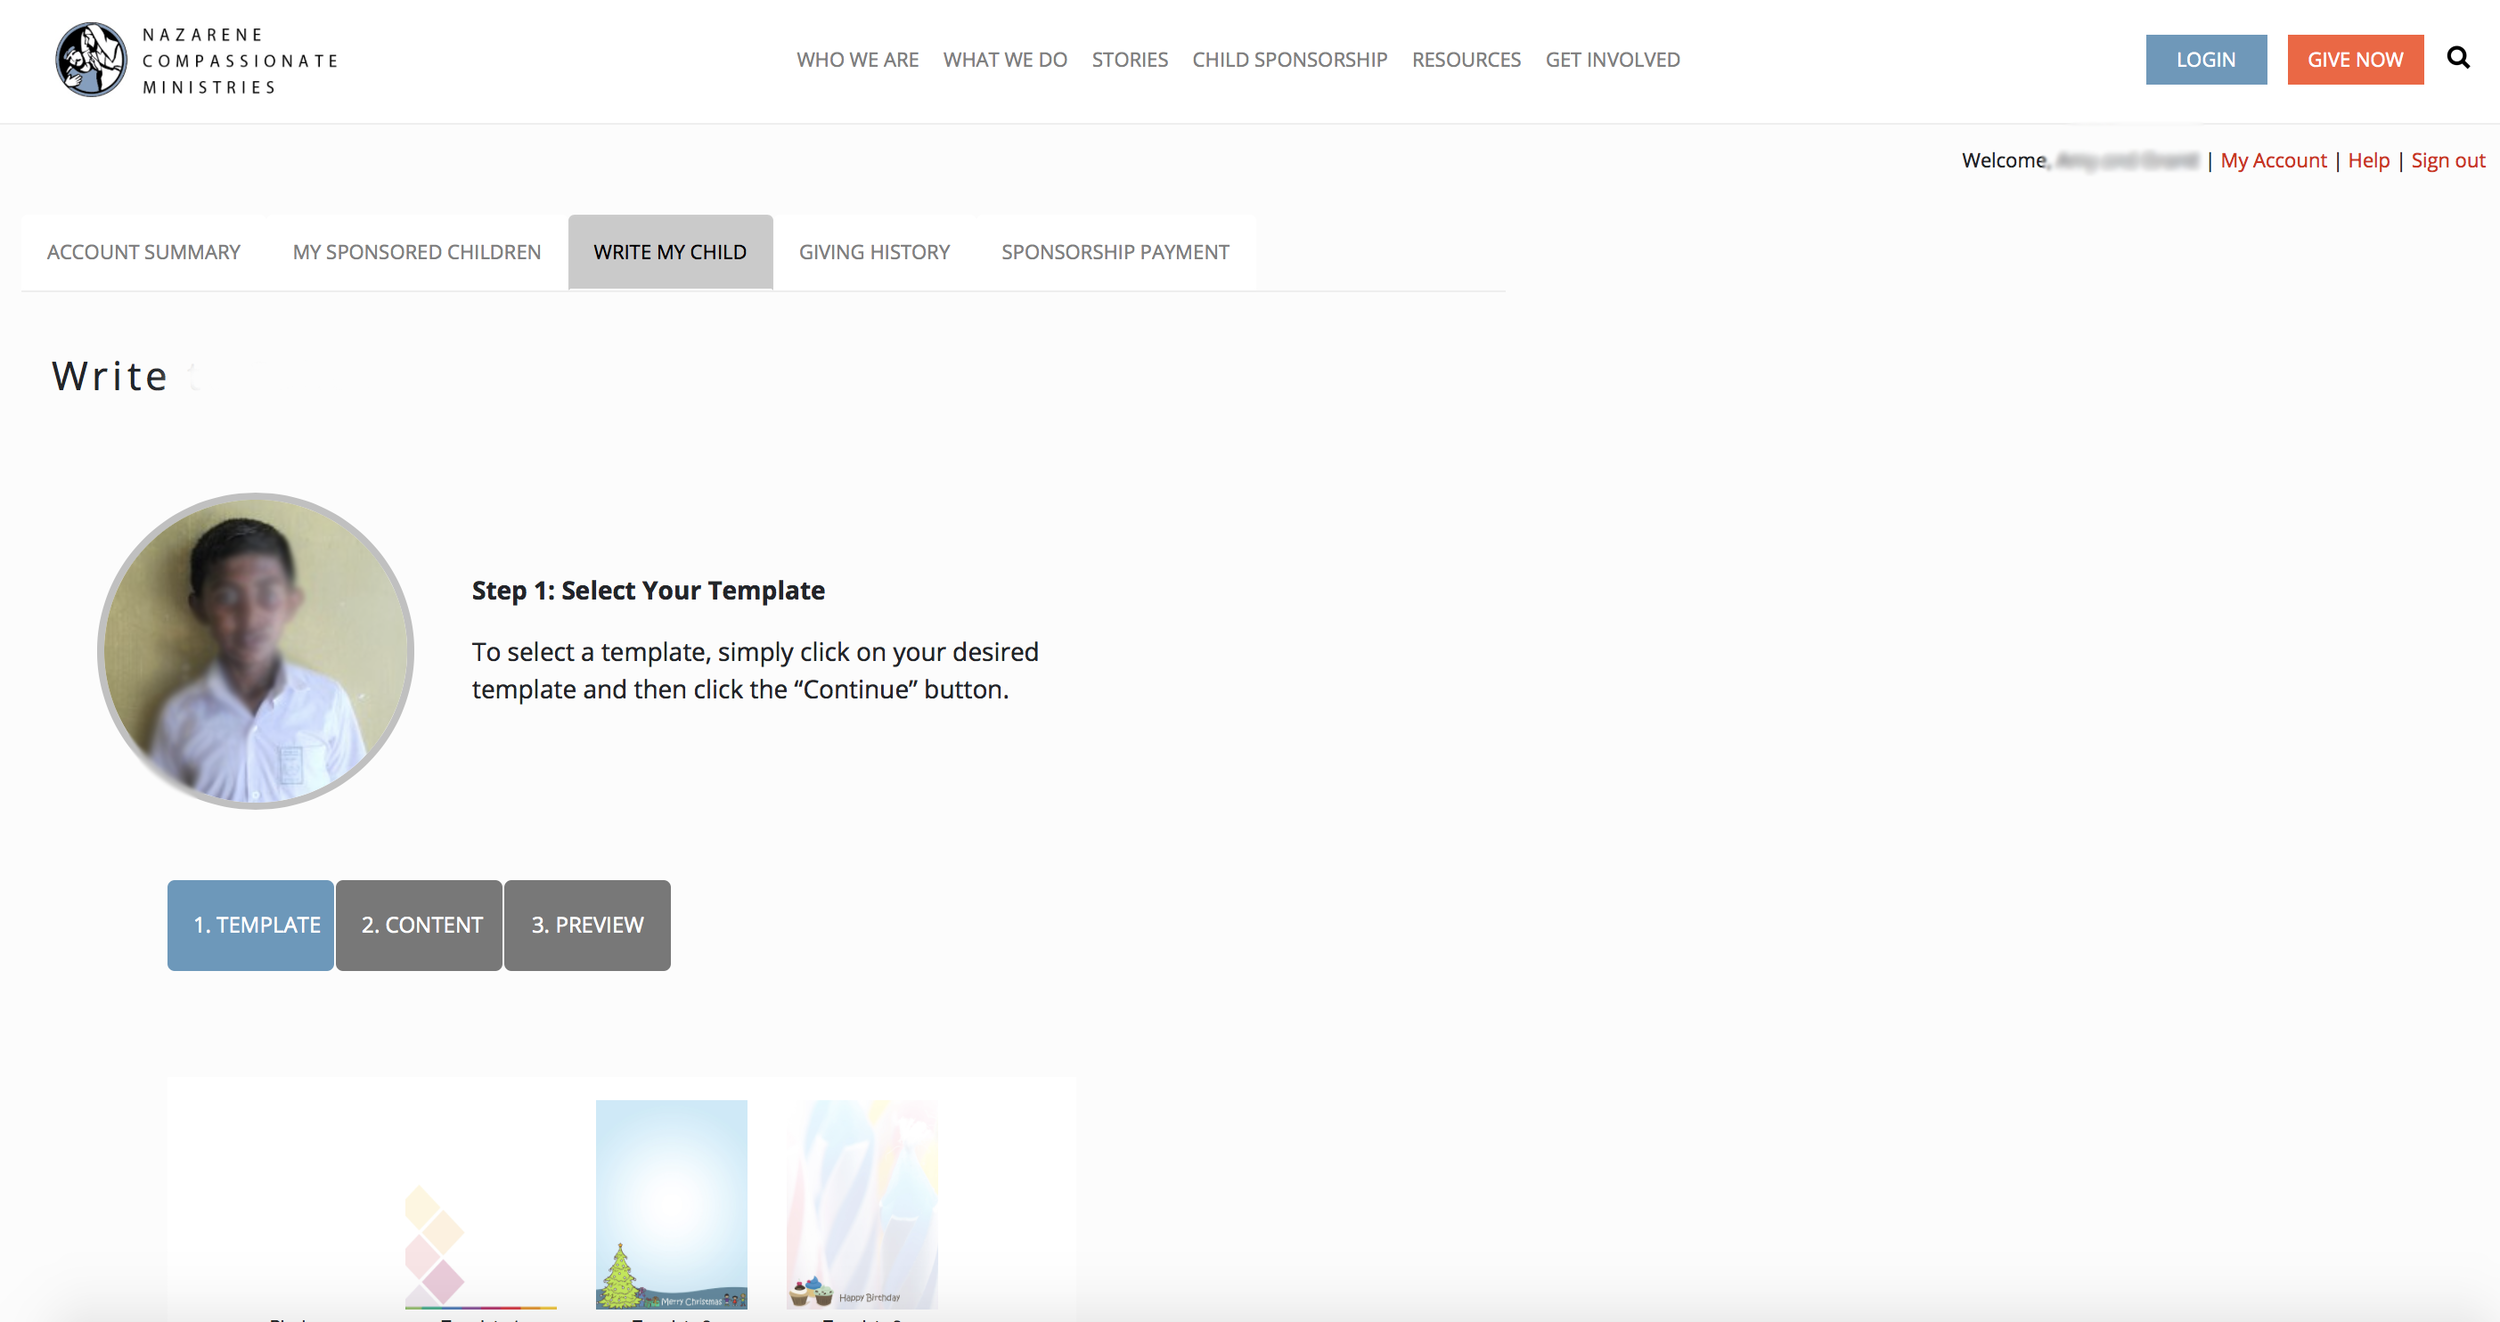 Step 5: Select a template - Scroll down to see all the options!